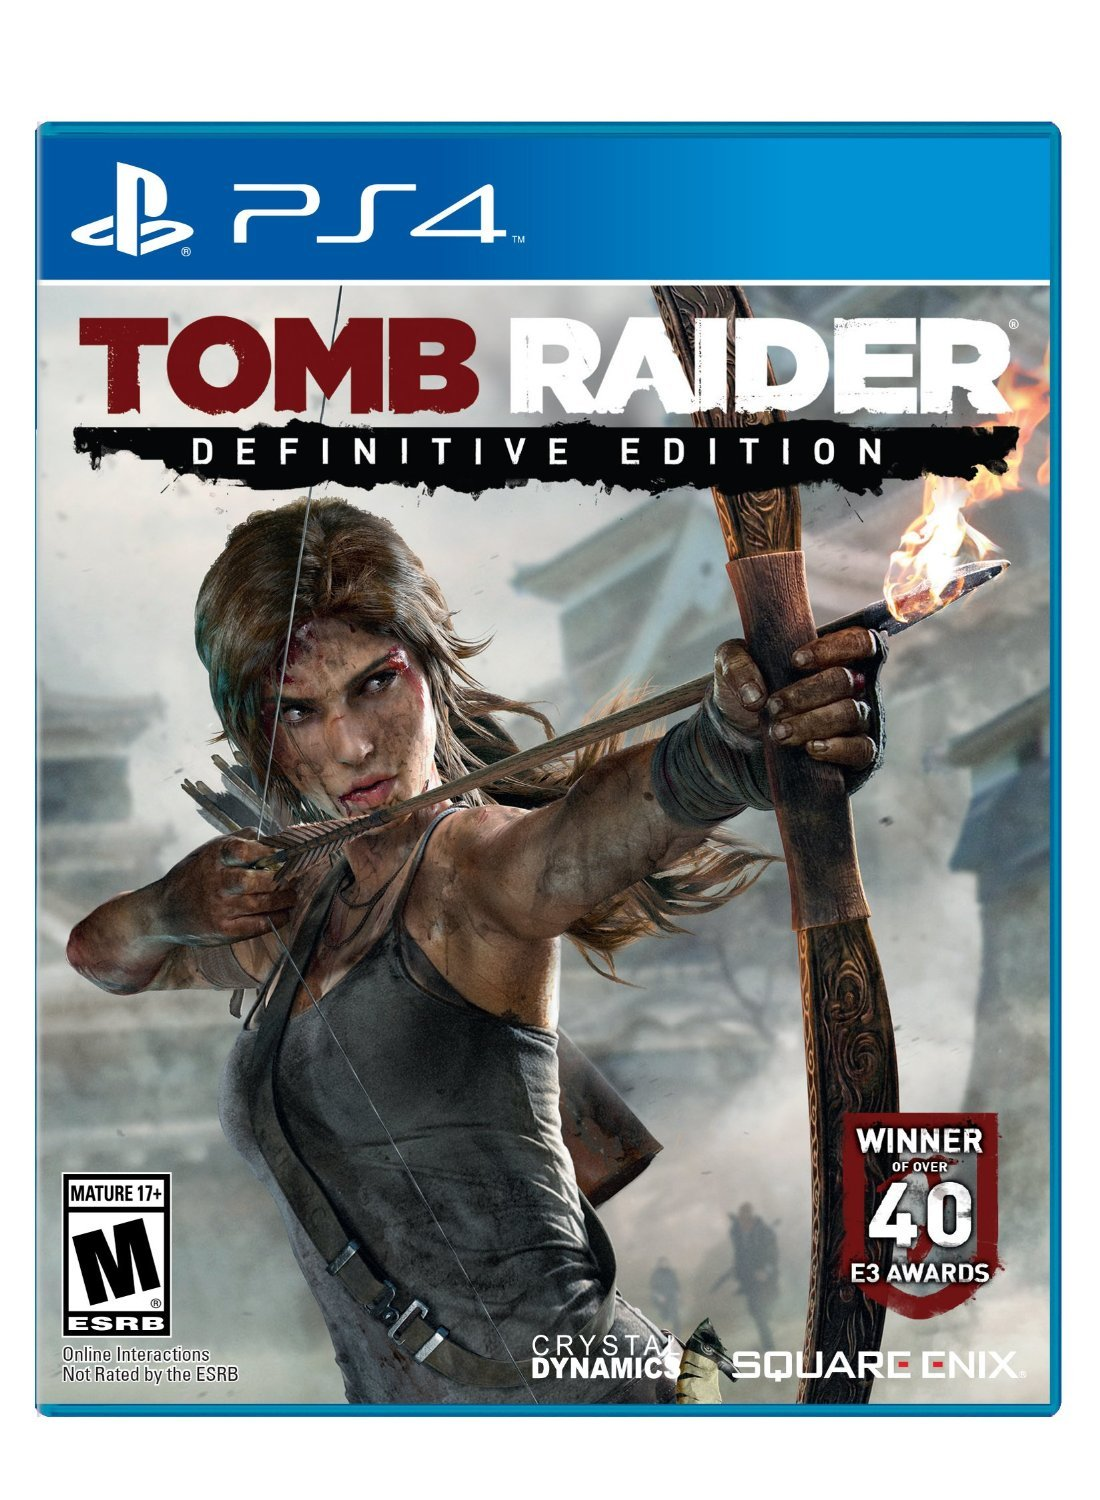 Tomb Raider: Definitive Edition PS4 Physical Game Disc US